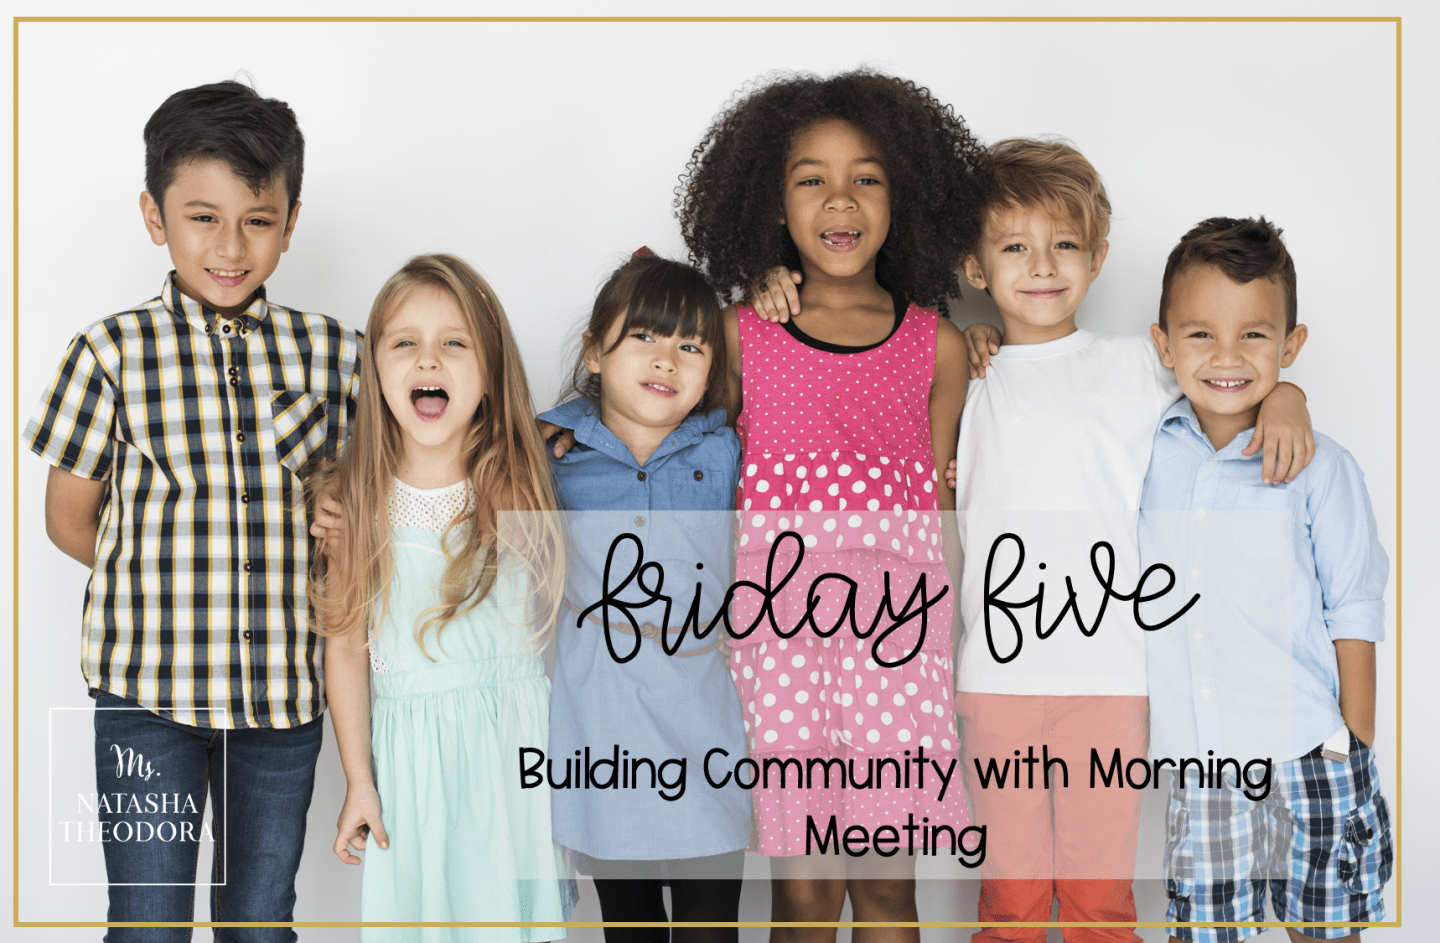 Kids standing together to build community in morning meeting